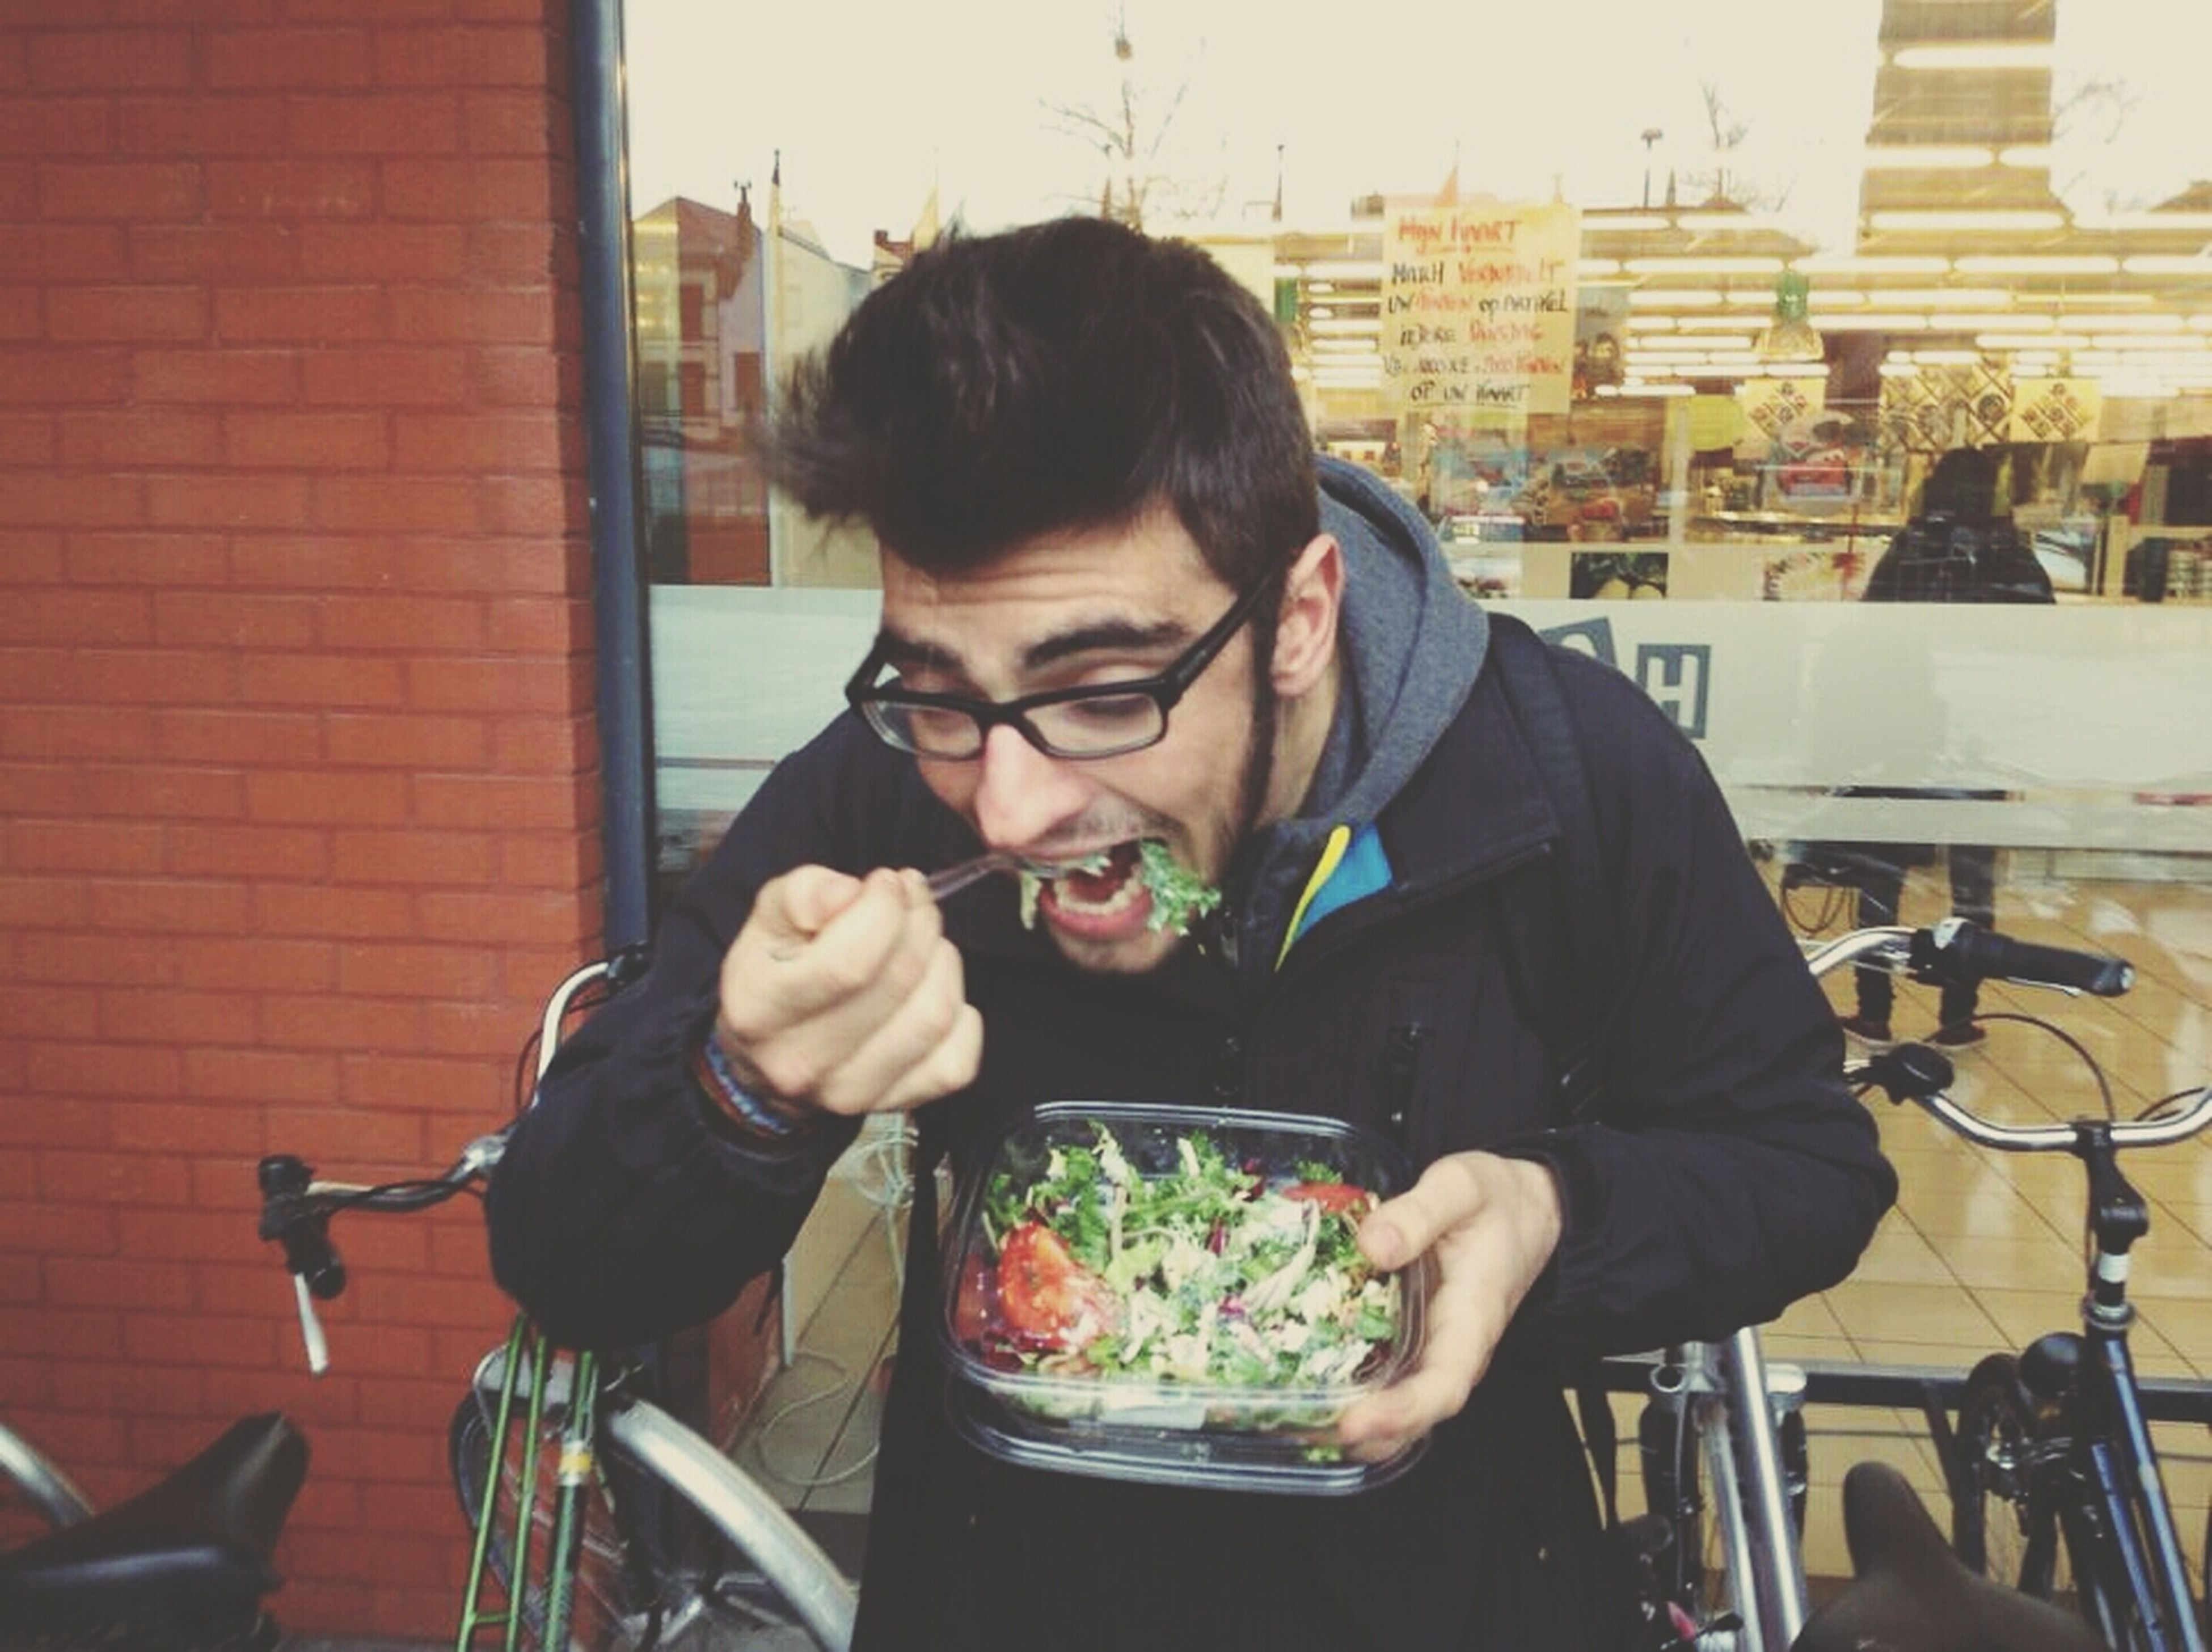 my friend eating a salad Oh His Manners Hanging Out Taking Photos Eating Salad